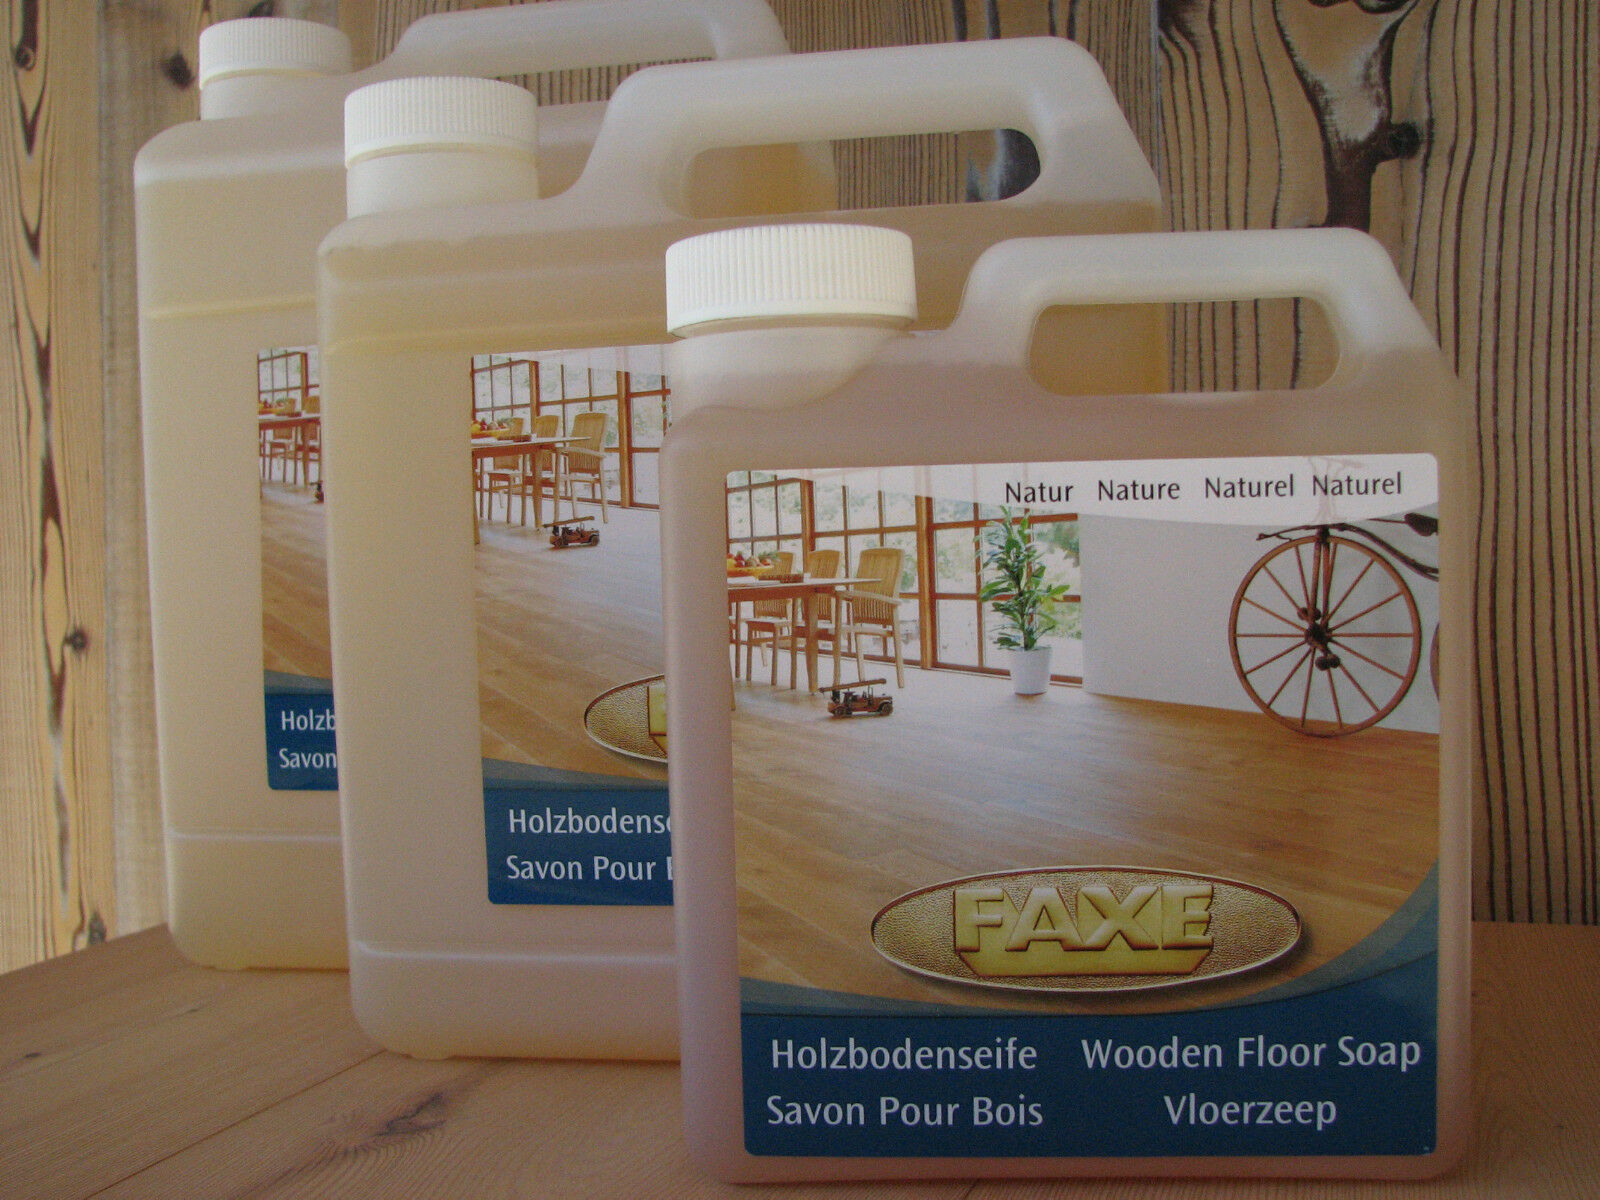 ( L) Faxe Holzbodenseife natur, 5 Liter